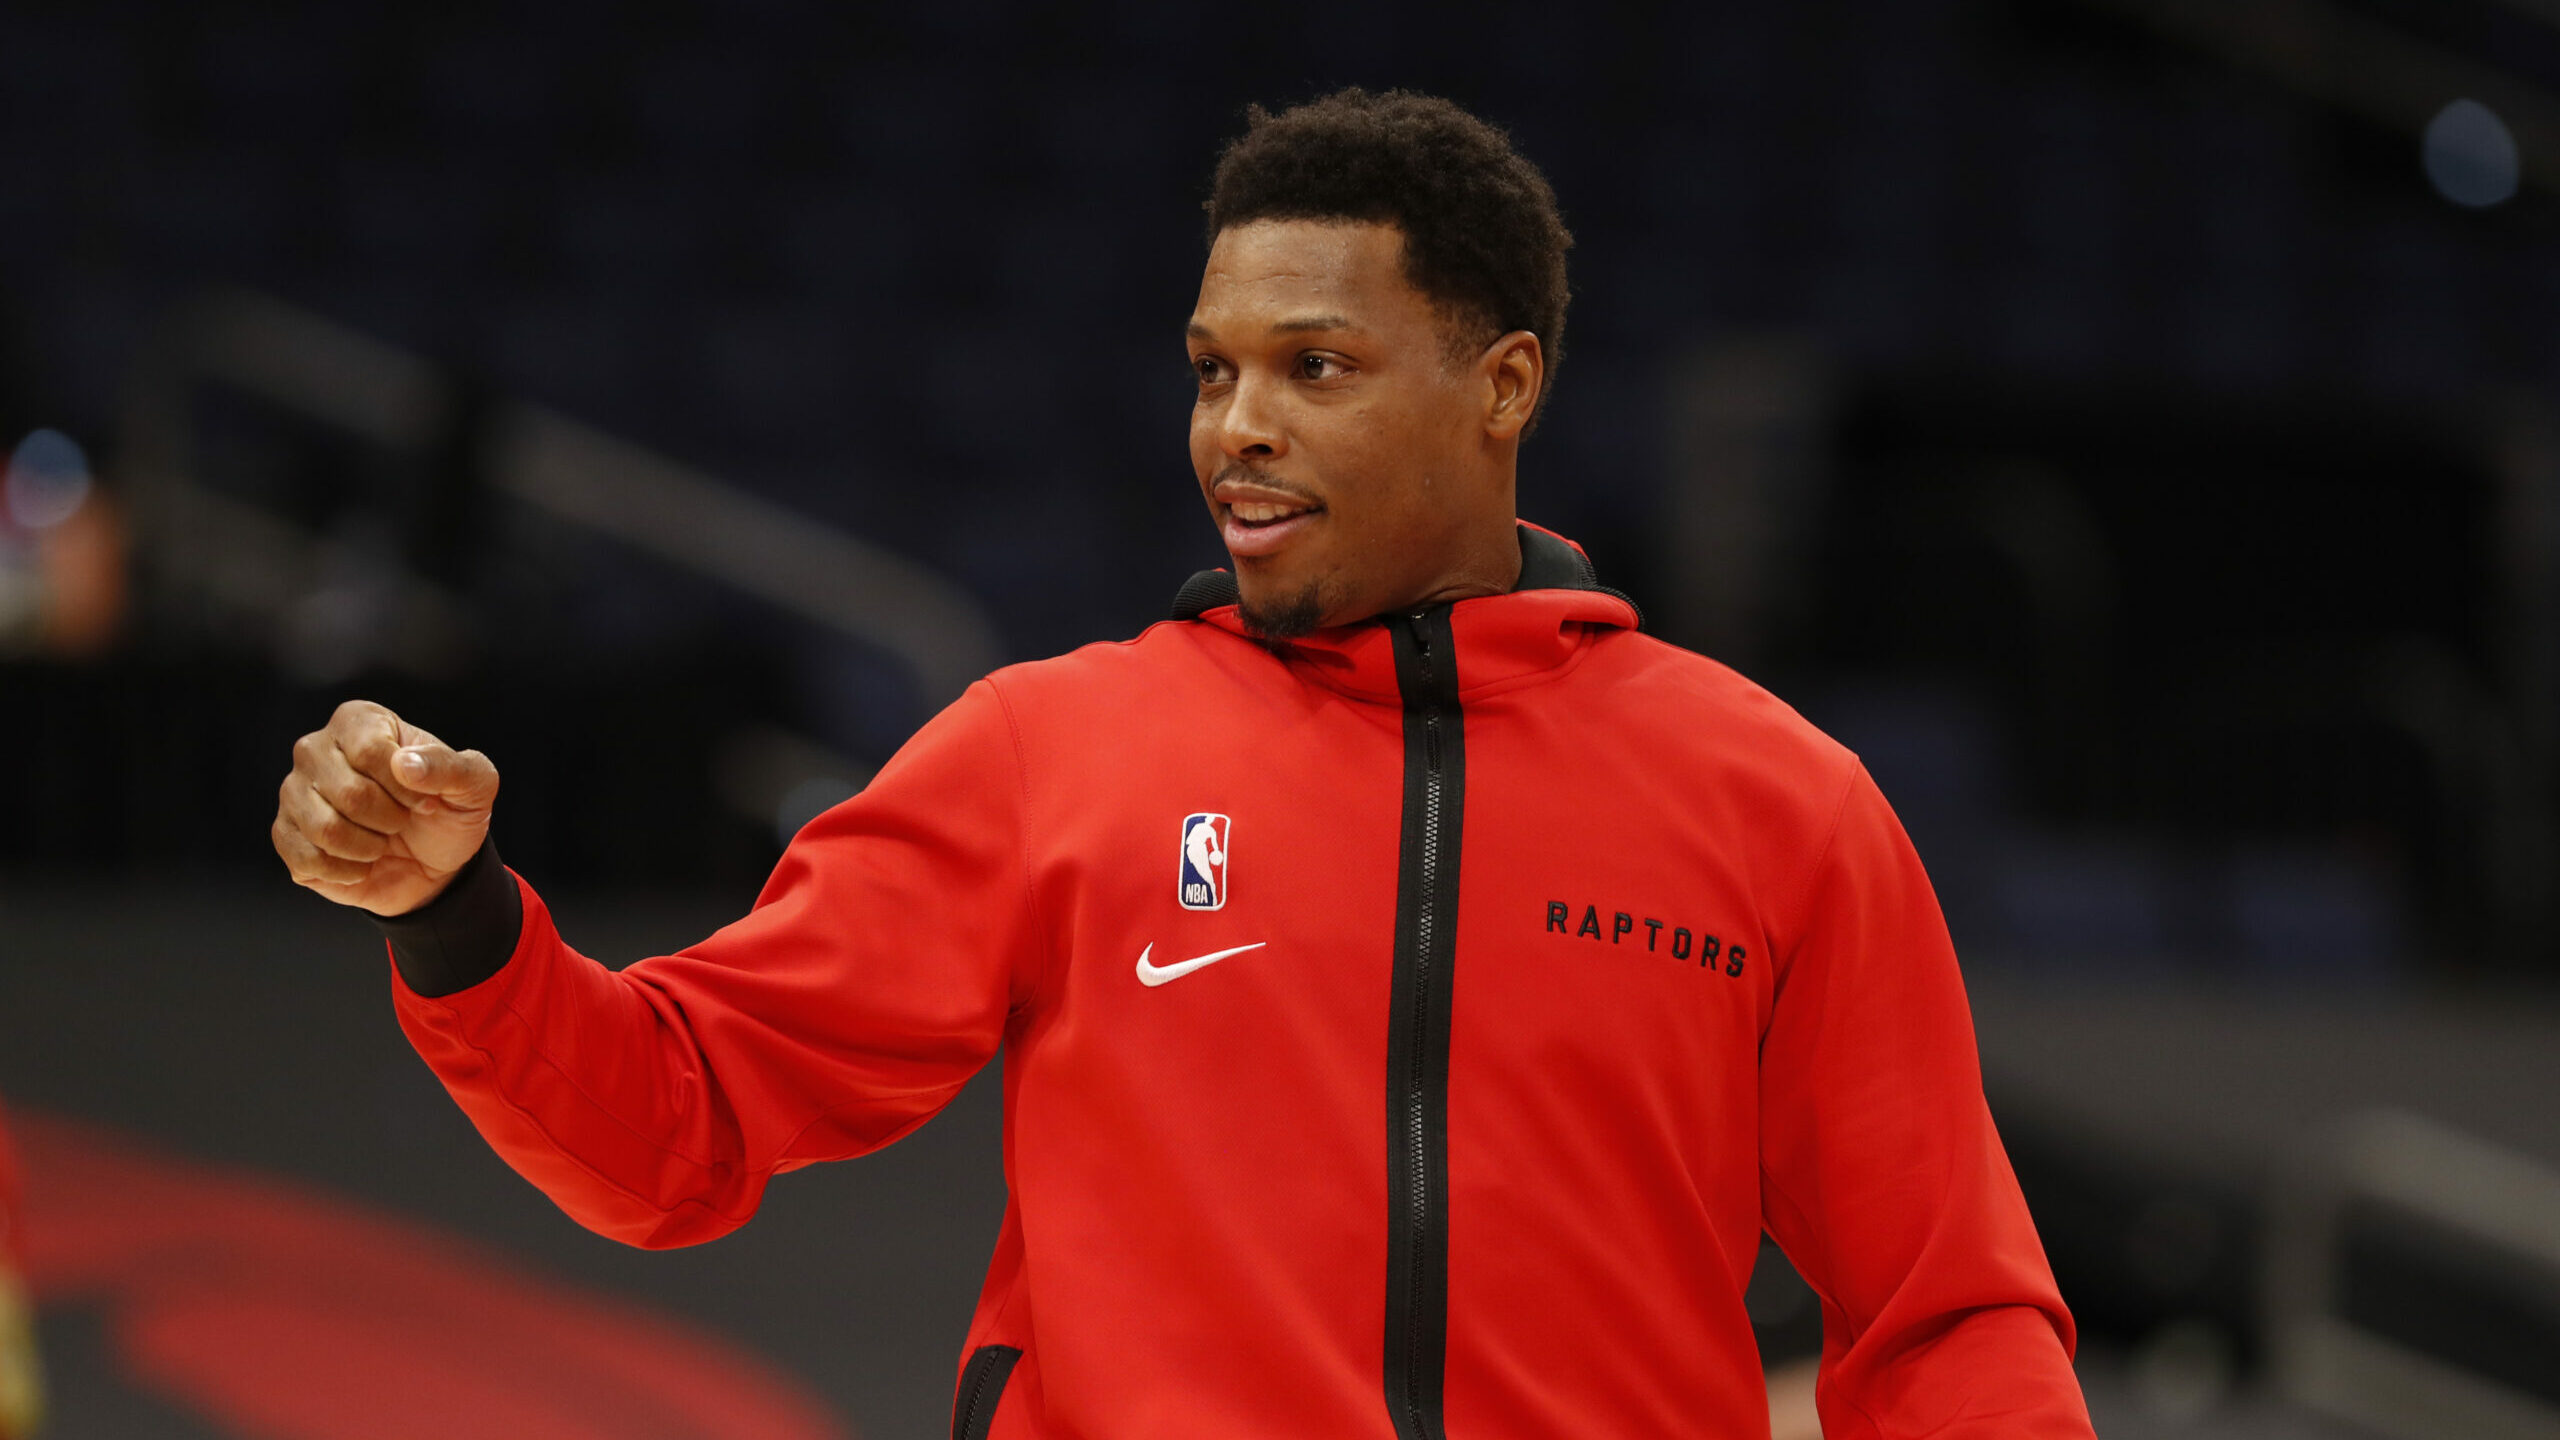 Lowry joining Heat in sign-and-trade deal